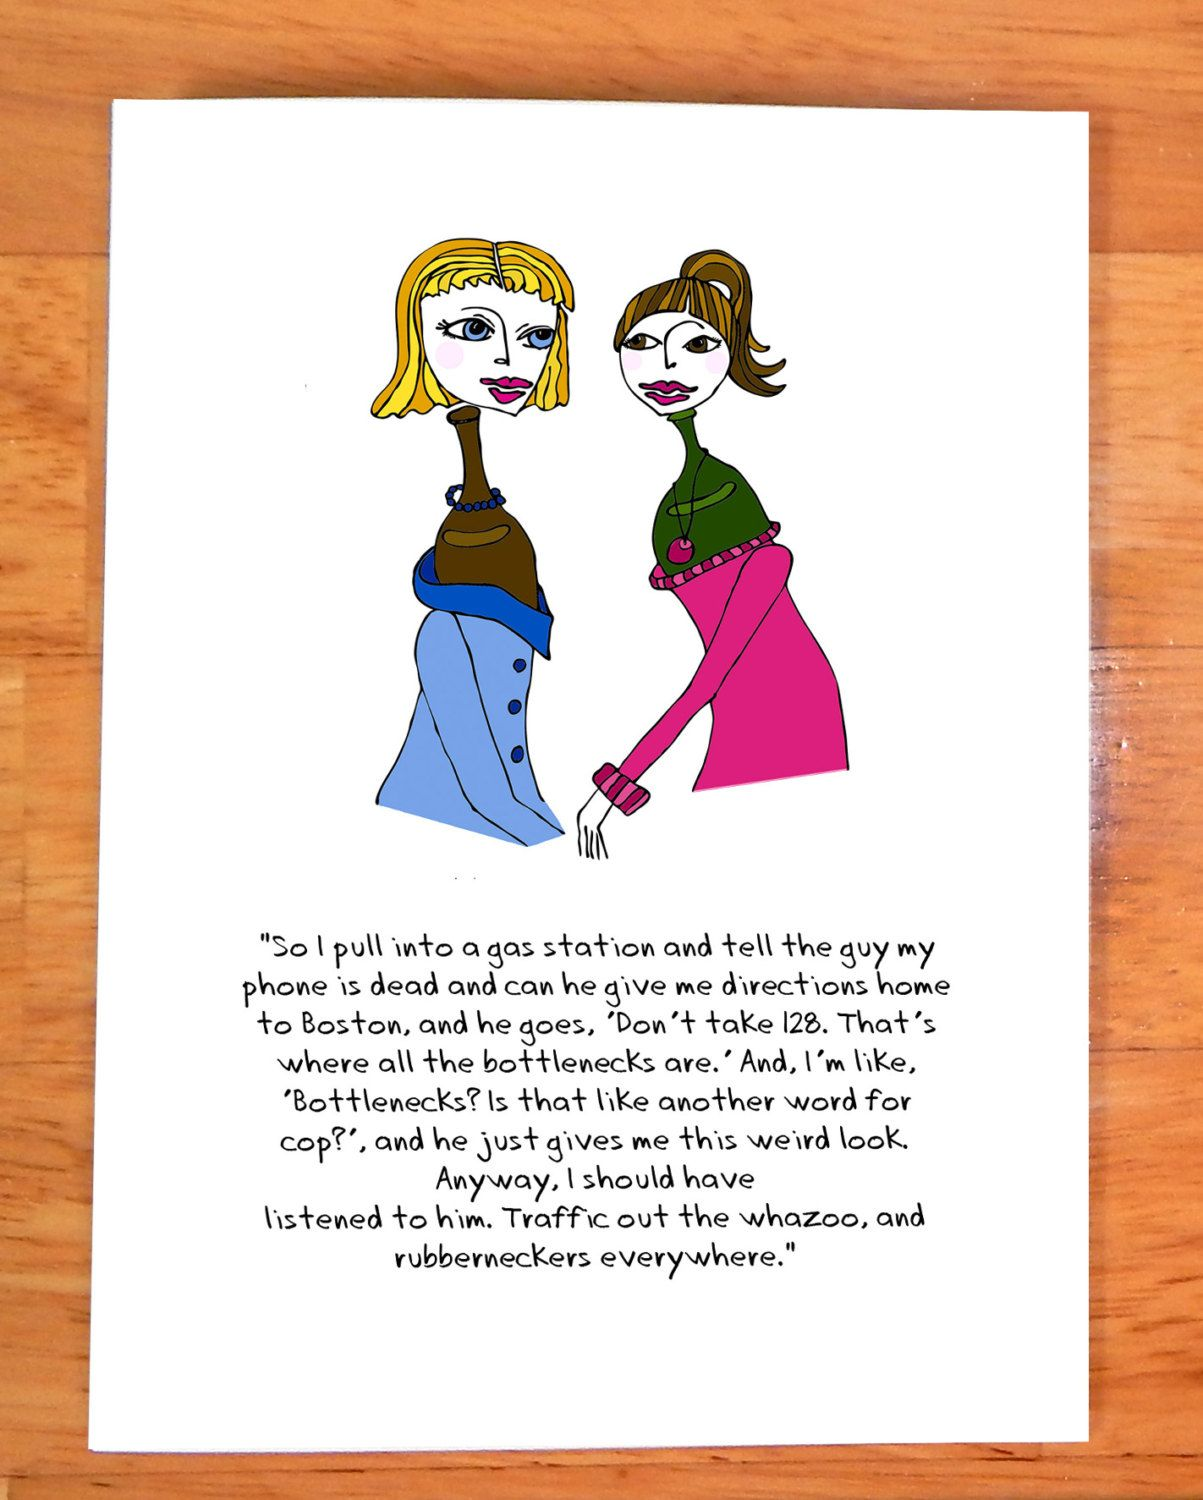 Funny Card 5 X 7 Note Card Greeting Card Blank Inside Perfect For Matting And Or Framing Taken Literally Bottlen Funny Cards Story Card Blank Cards